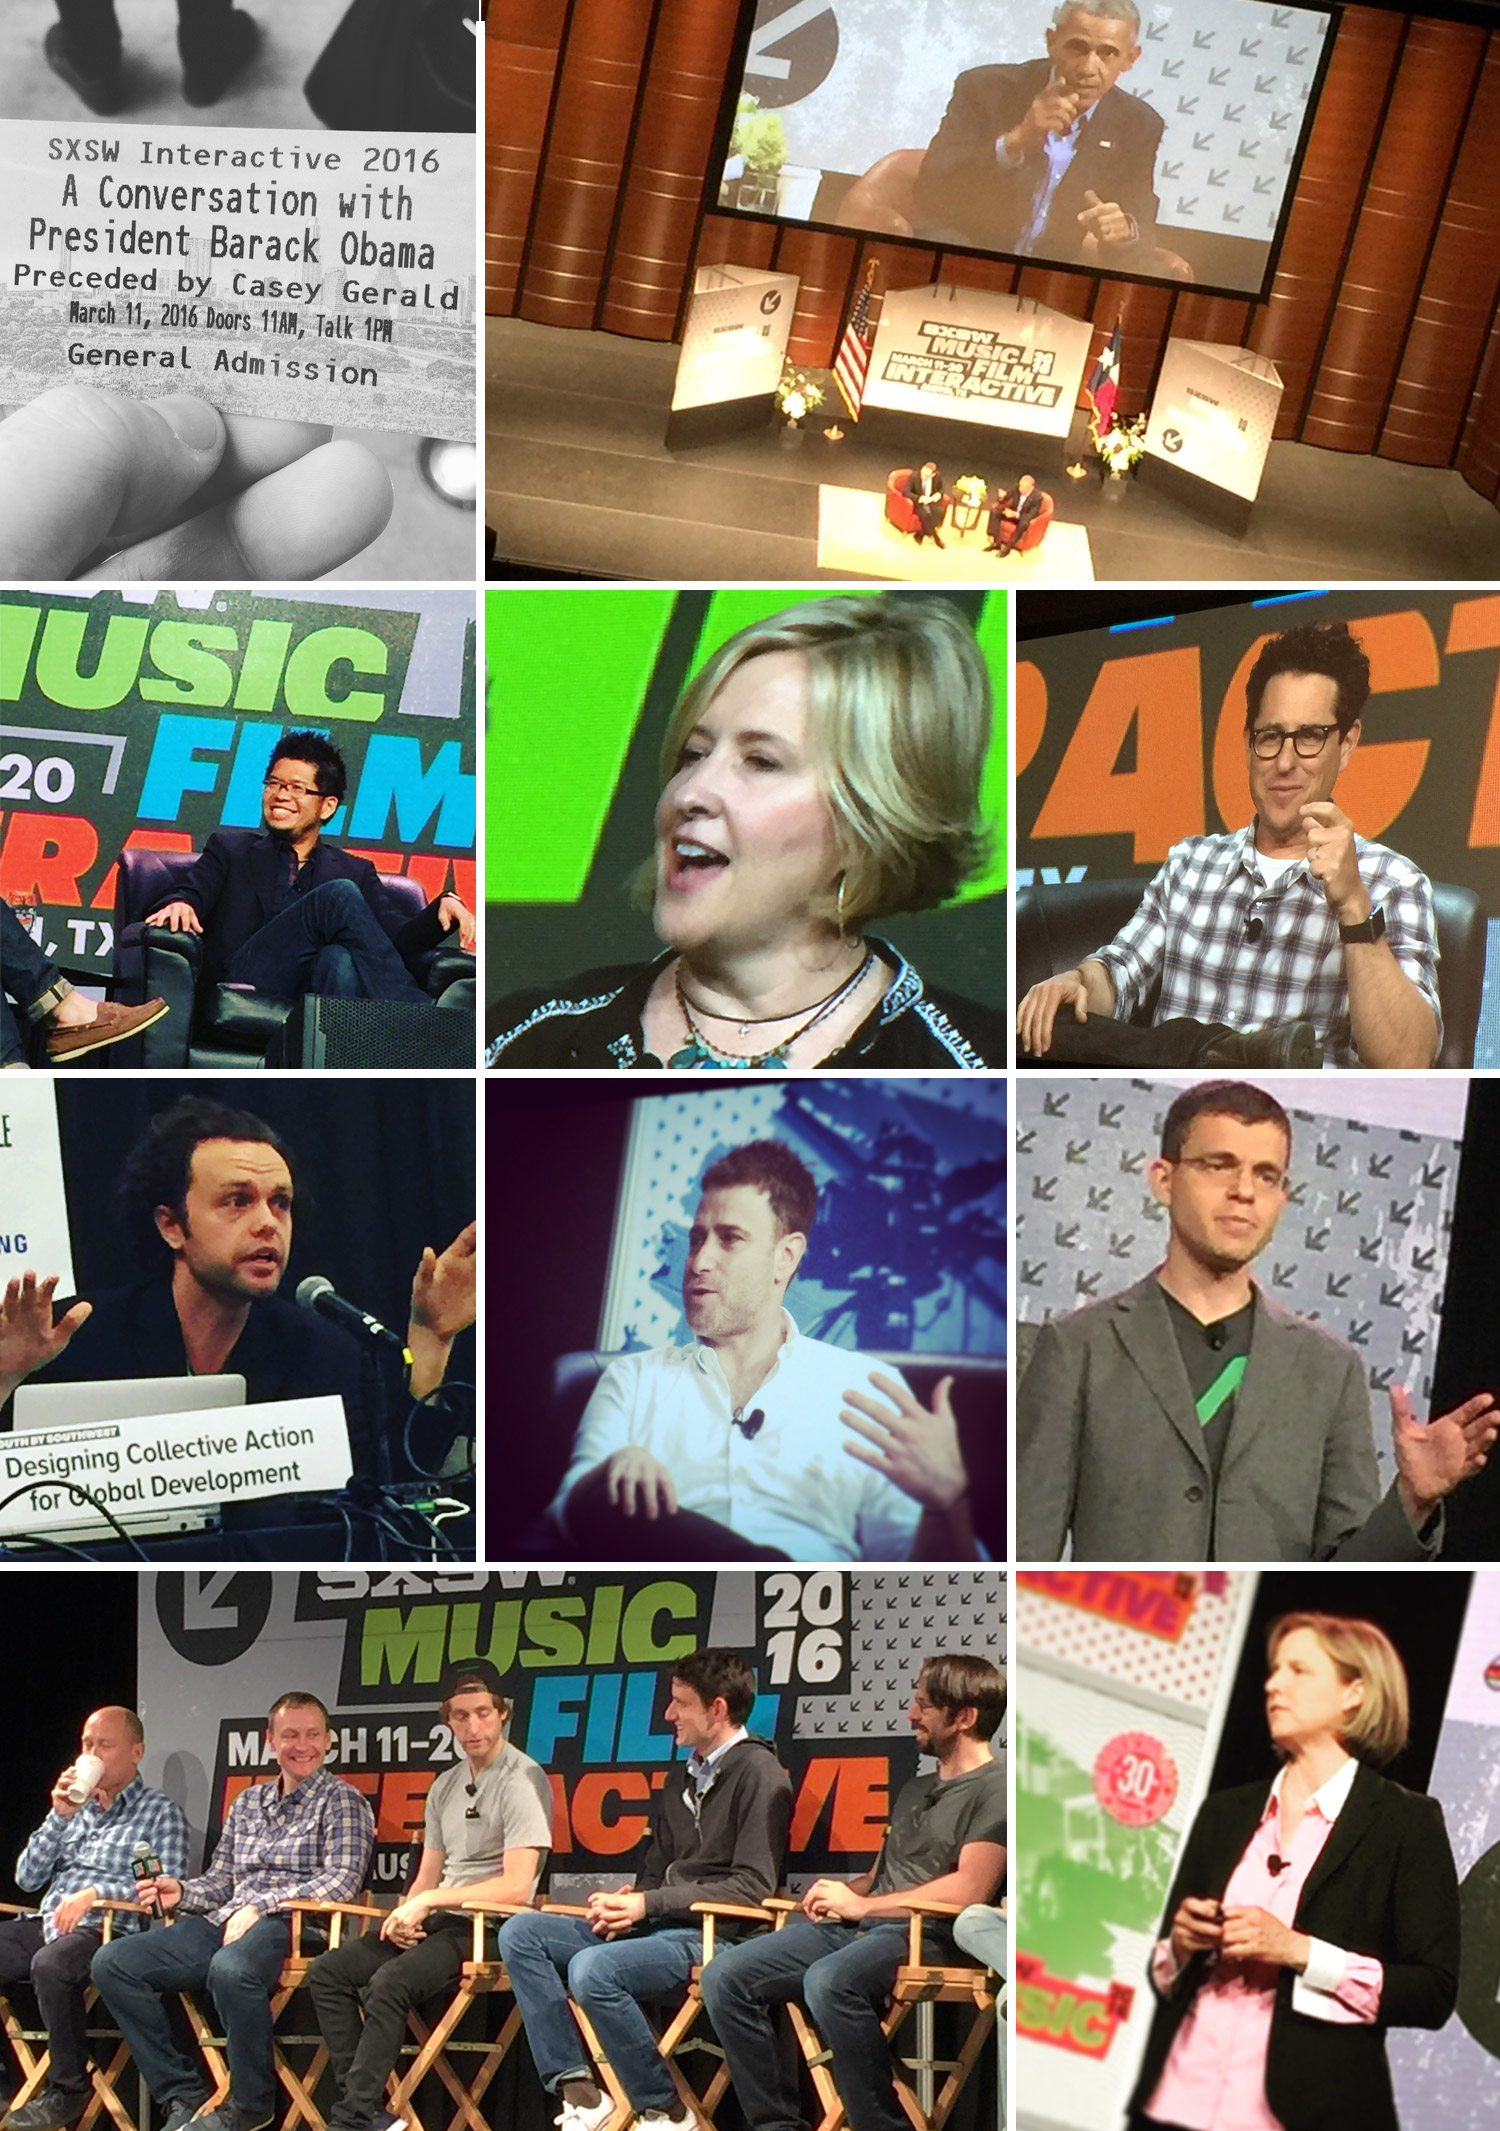 With more than 3,000 speakers, SXSW can be overwhelming! Here's some of my favorites this year. (Top row) President Barack Obama (2nd row) YouTube founder, Steve Chen; film director and producer, JJ Abrams; scholar, author and speaker, Dr. Brene Brown (3rd row) United Nations' innovator, Brent Dixon; Slack founder, Stewart Butterfield; Affirm founder, Max Levchin (4th row) creators and cast of HBO's Silicon Valley, White House CTO, Megan Smith.